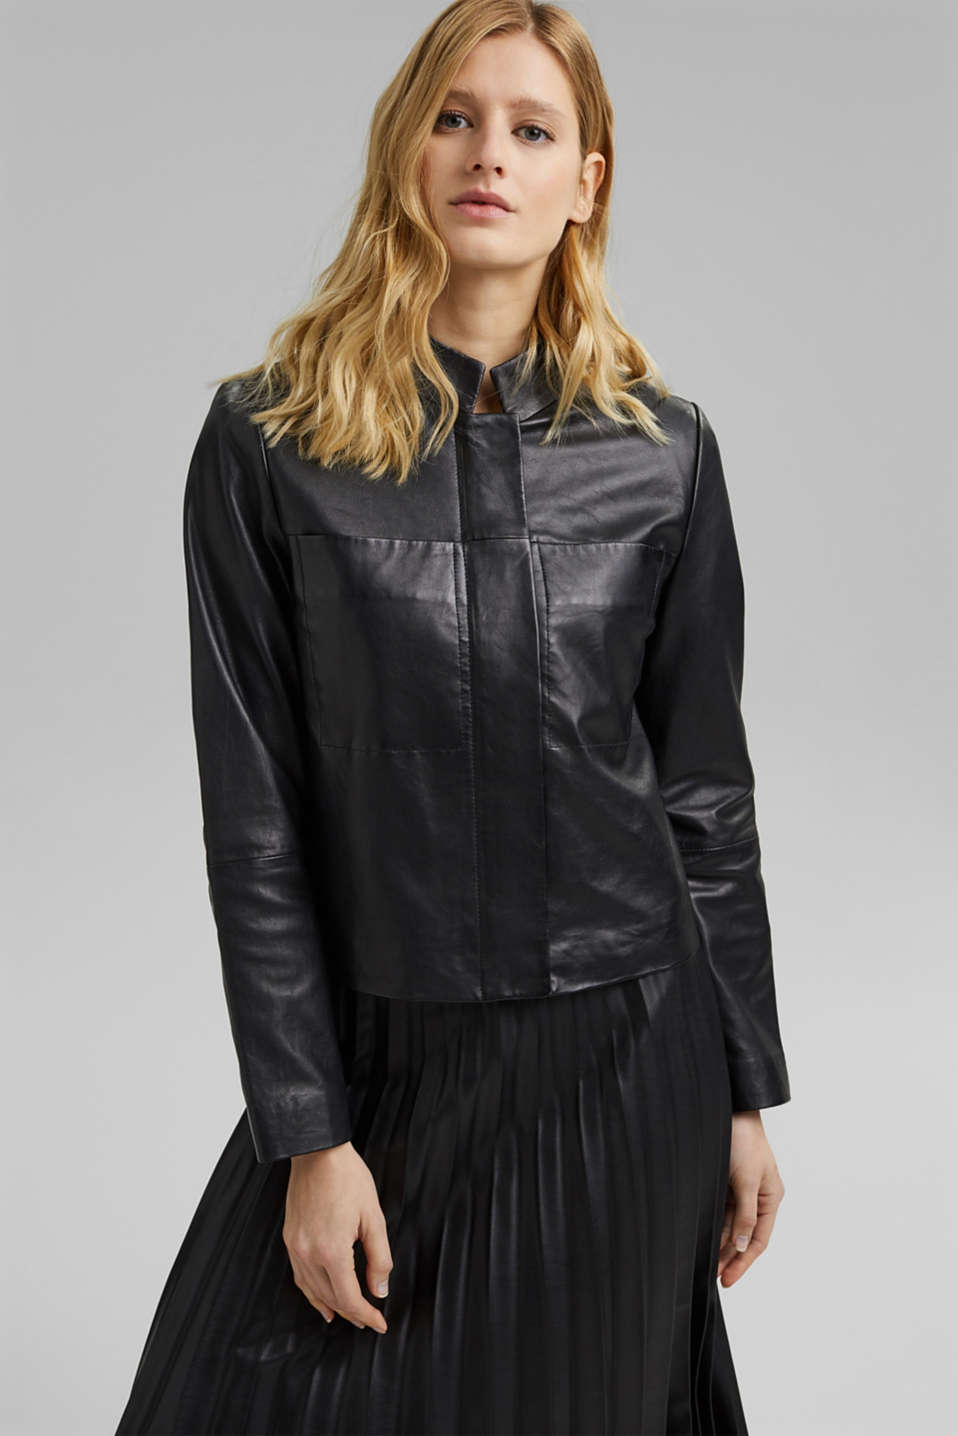 Esprit - Leather jacket made of 100% leather